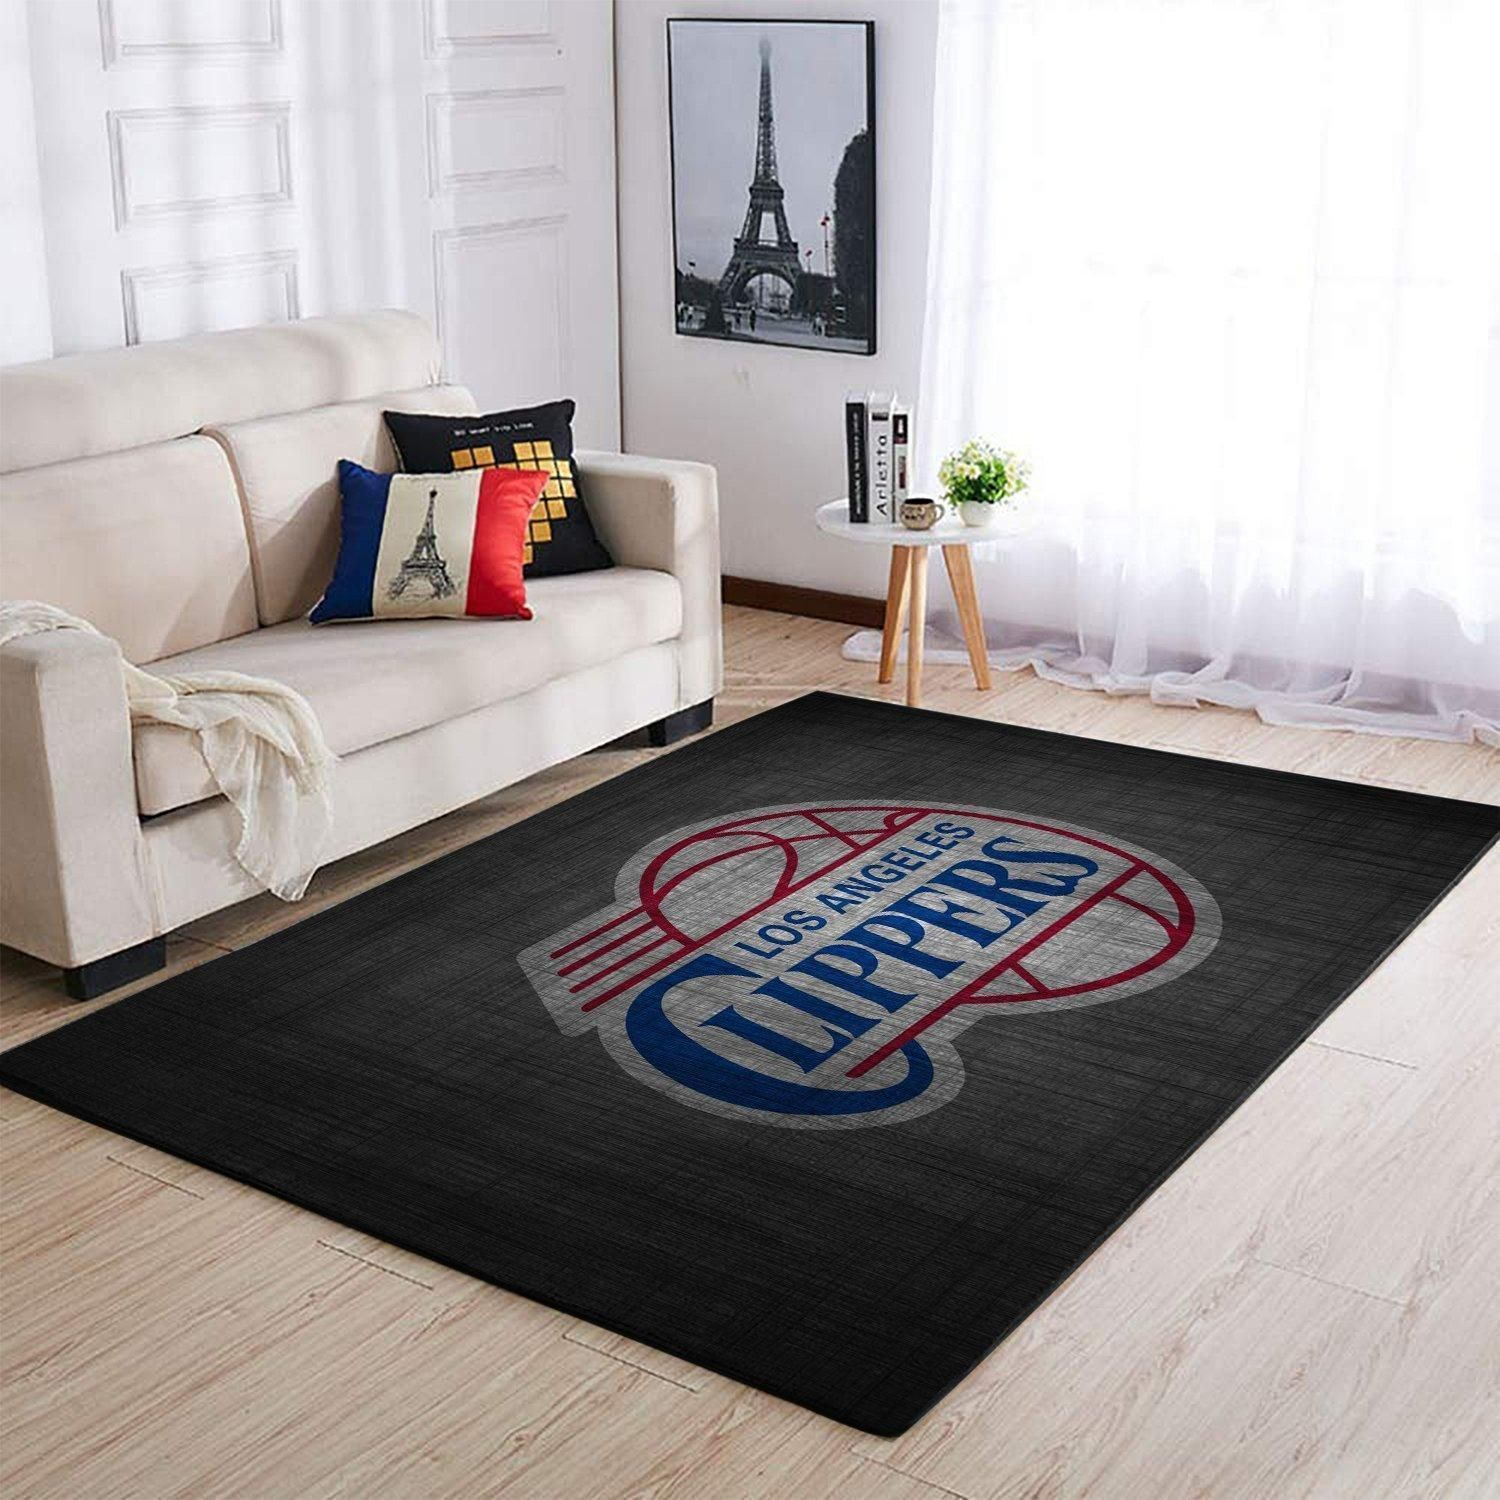 Amazon Los Angeles Clippers Living Room Area No3563 Rug